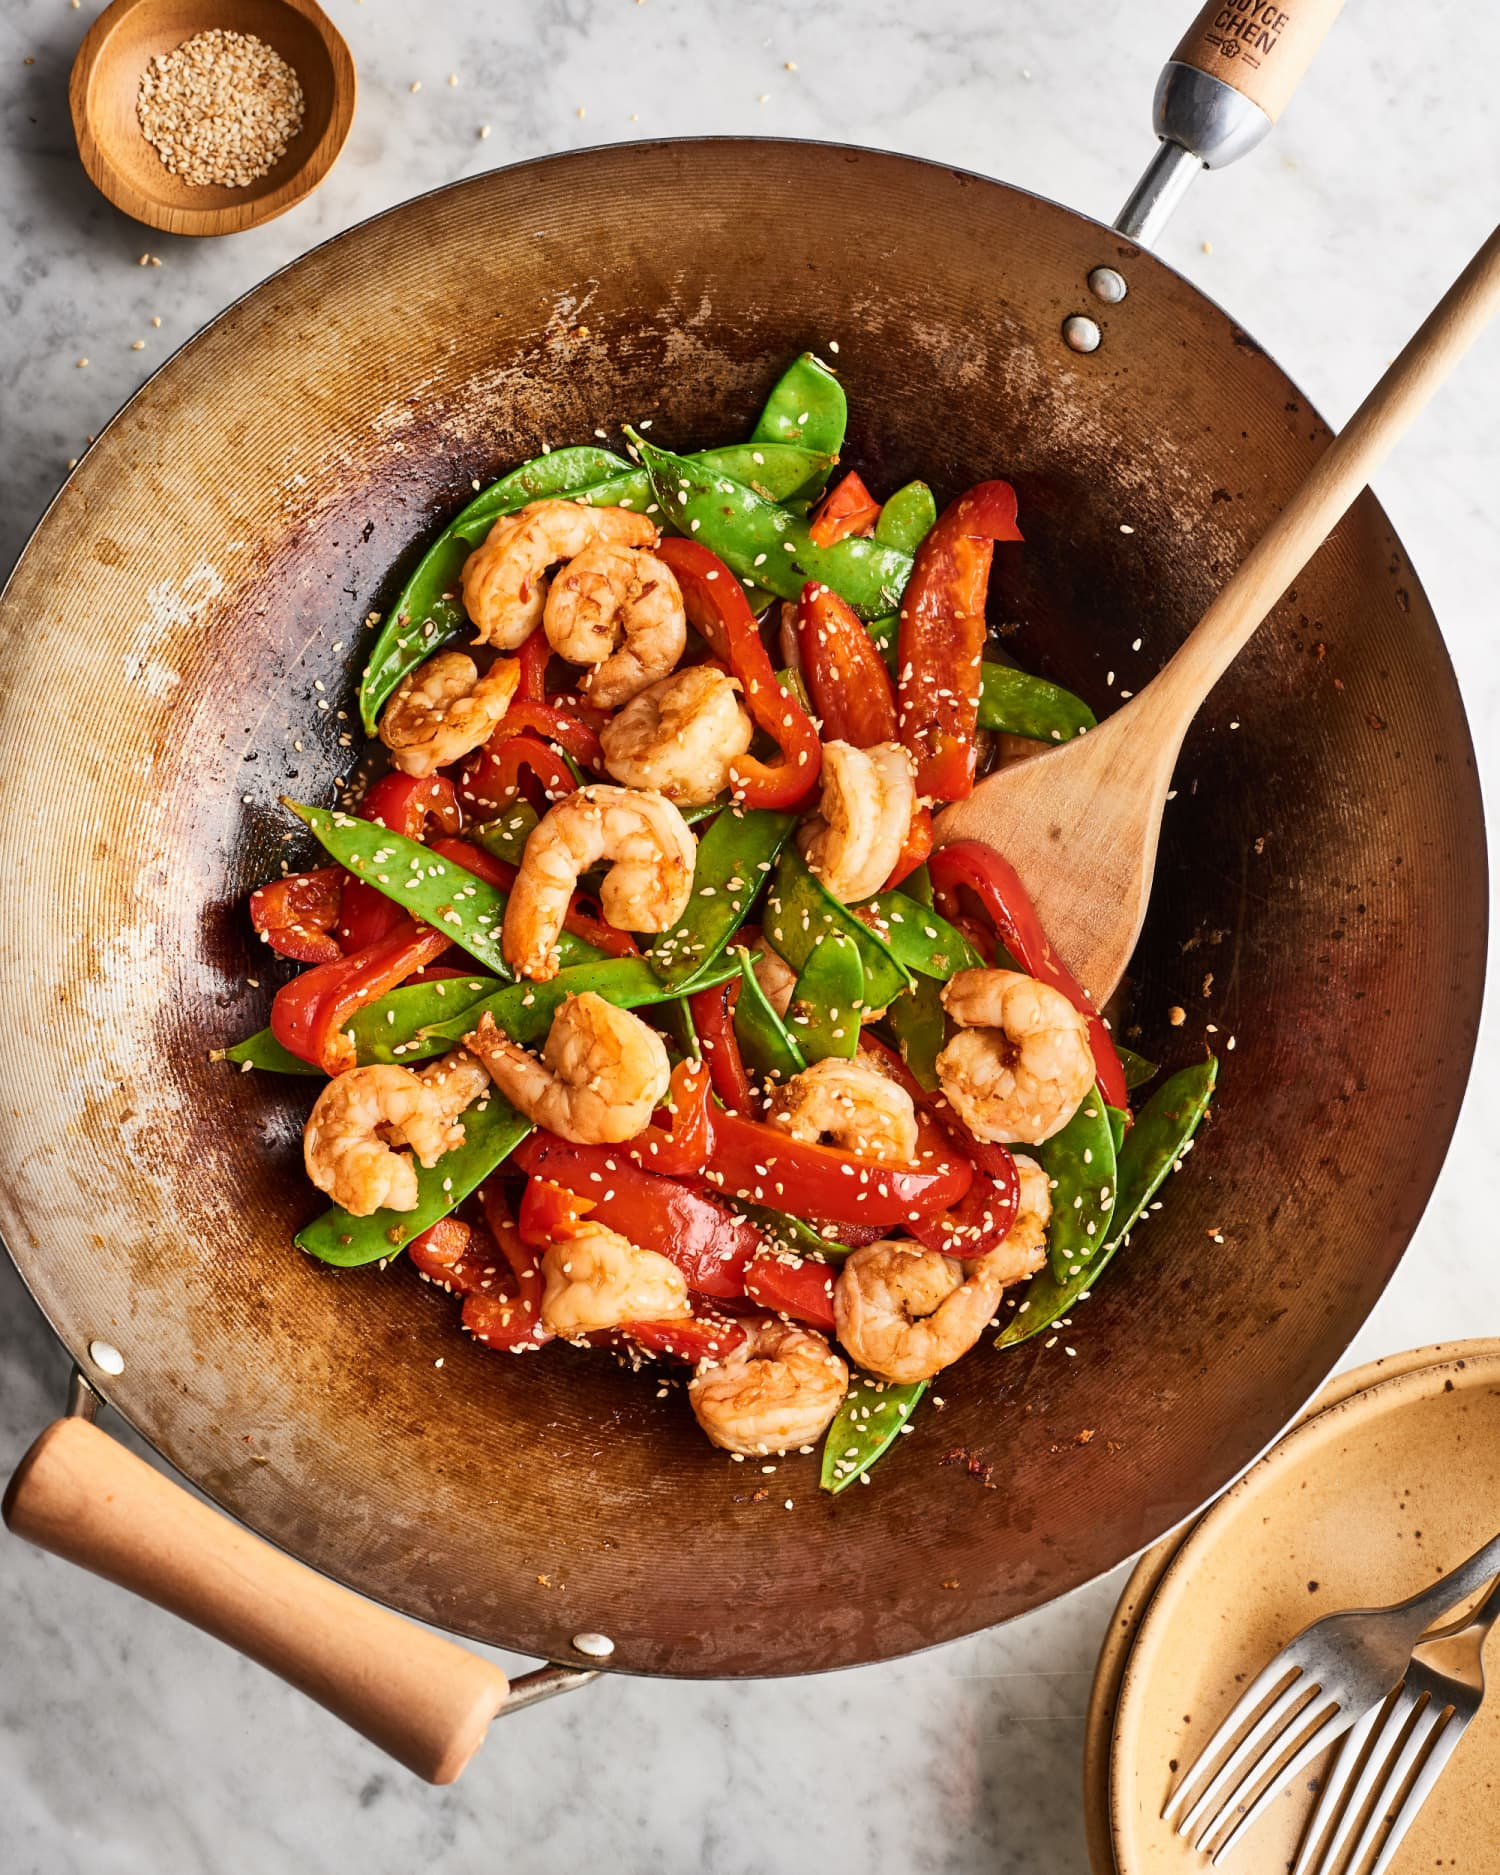 15-Minute Shrimp & Veggie Stir-Fry